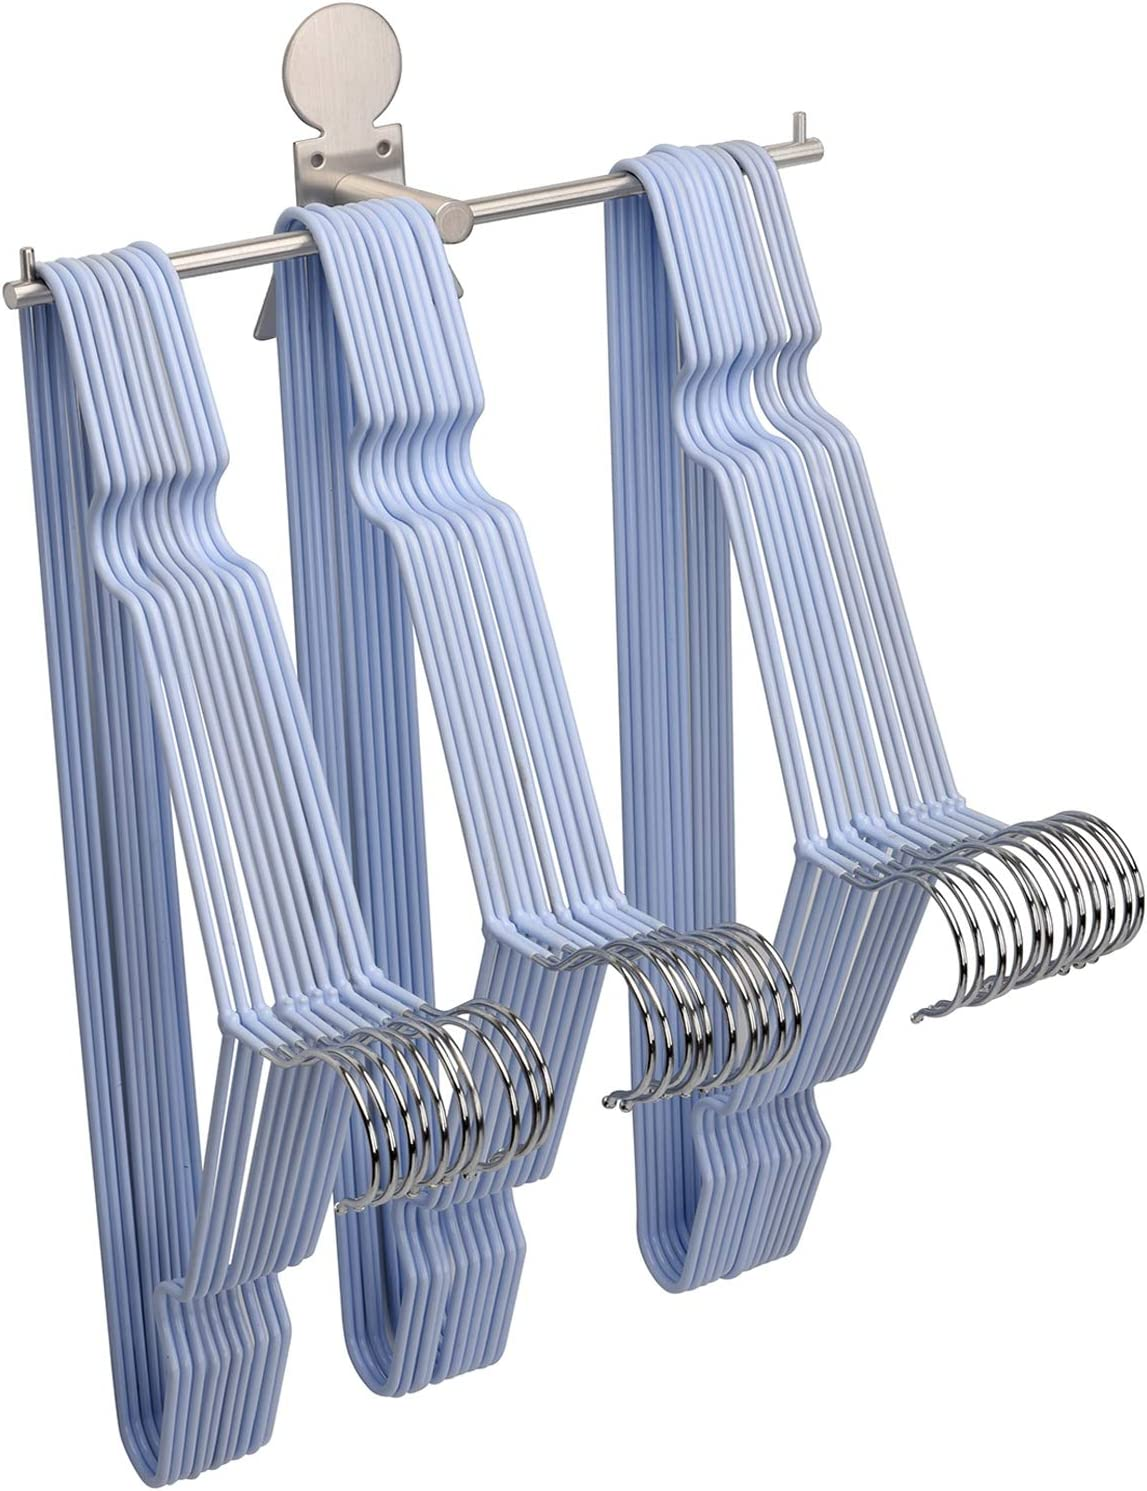 Clothes Hanger Organizer Stacker Storage Holder Rack for Closet and Laundry Room Tidier, Wall Mount, Adhesive or Drilling Installation, Stainless Steel